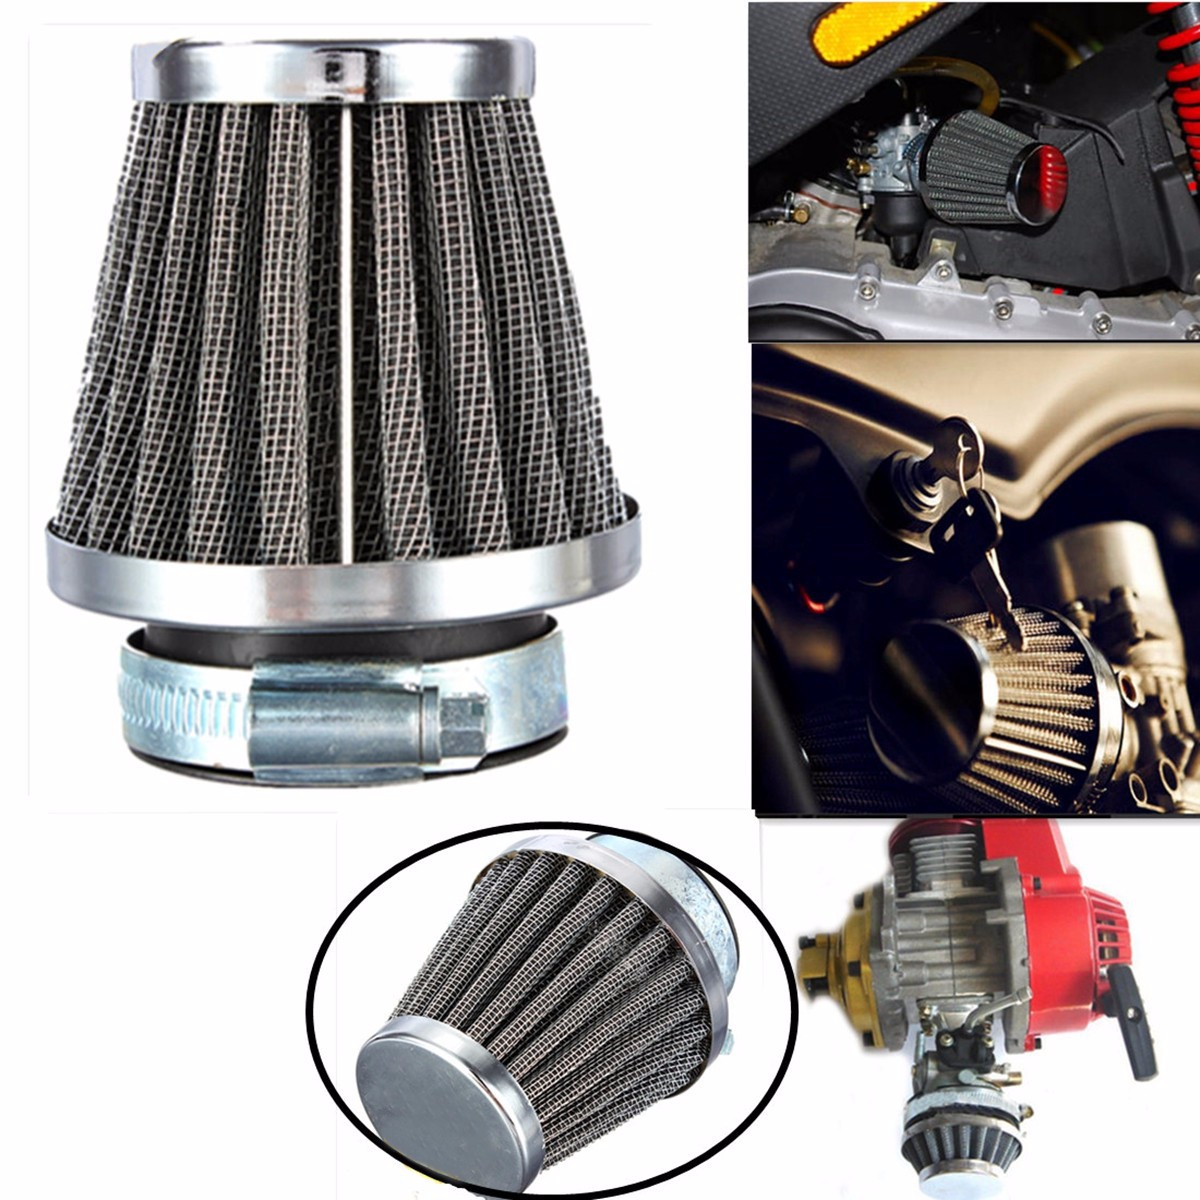 Motorcycle Air Filter Universal 35mm Air Filters Green for Honda CB 250 N R S CB400 N Kawasaki KZ250 A A1 A2 A3 B B1 B2 GPZ 305 Suzuki GS250 T E GS450 GSX 250 Yamaha DT250 MX XS250 SE XS400